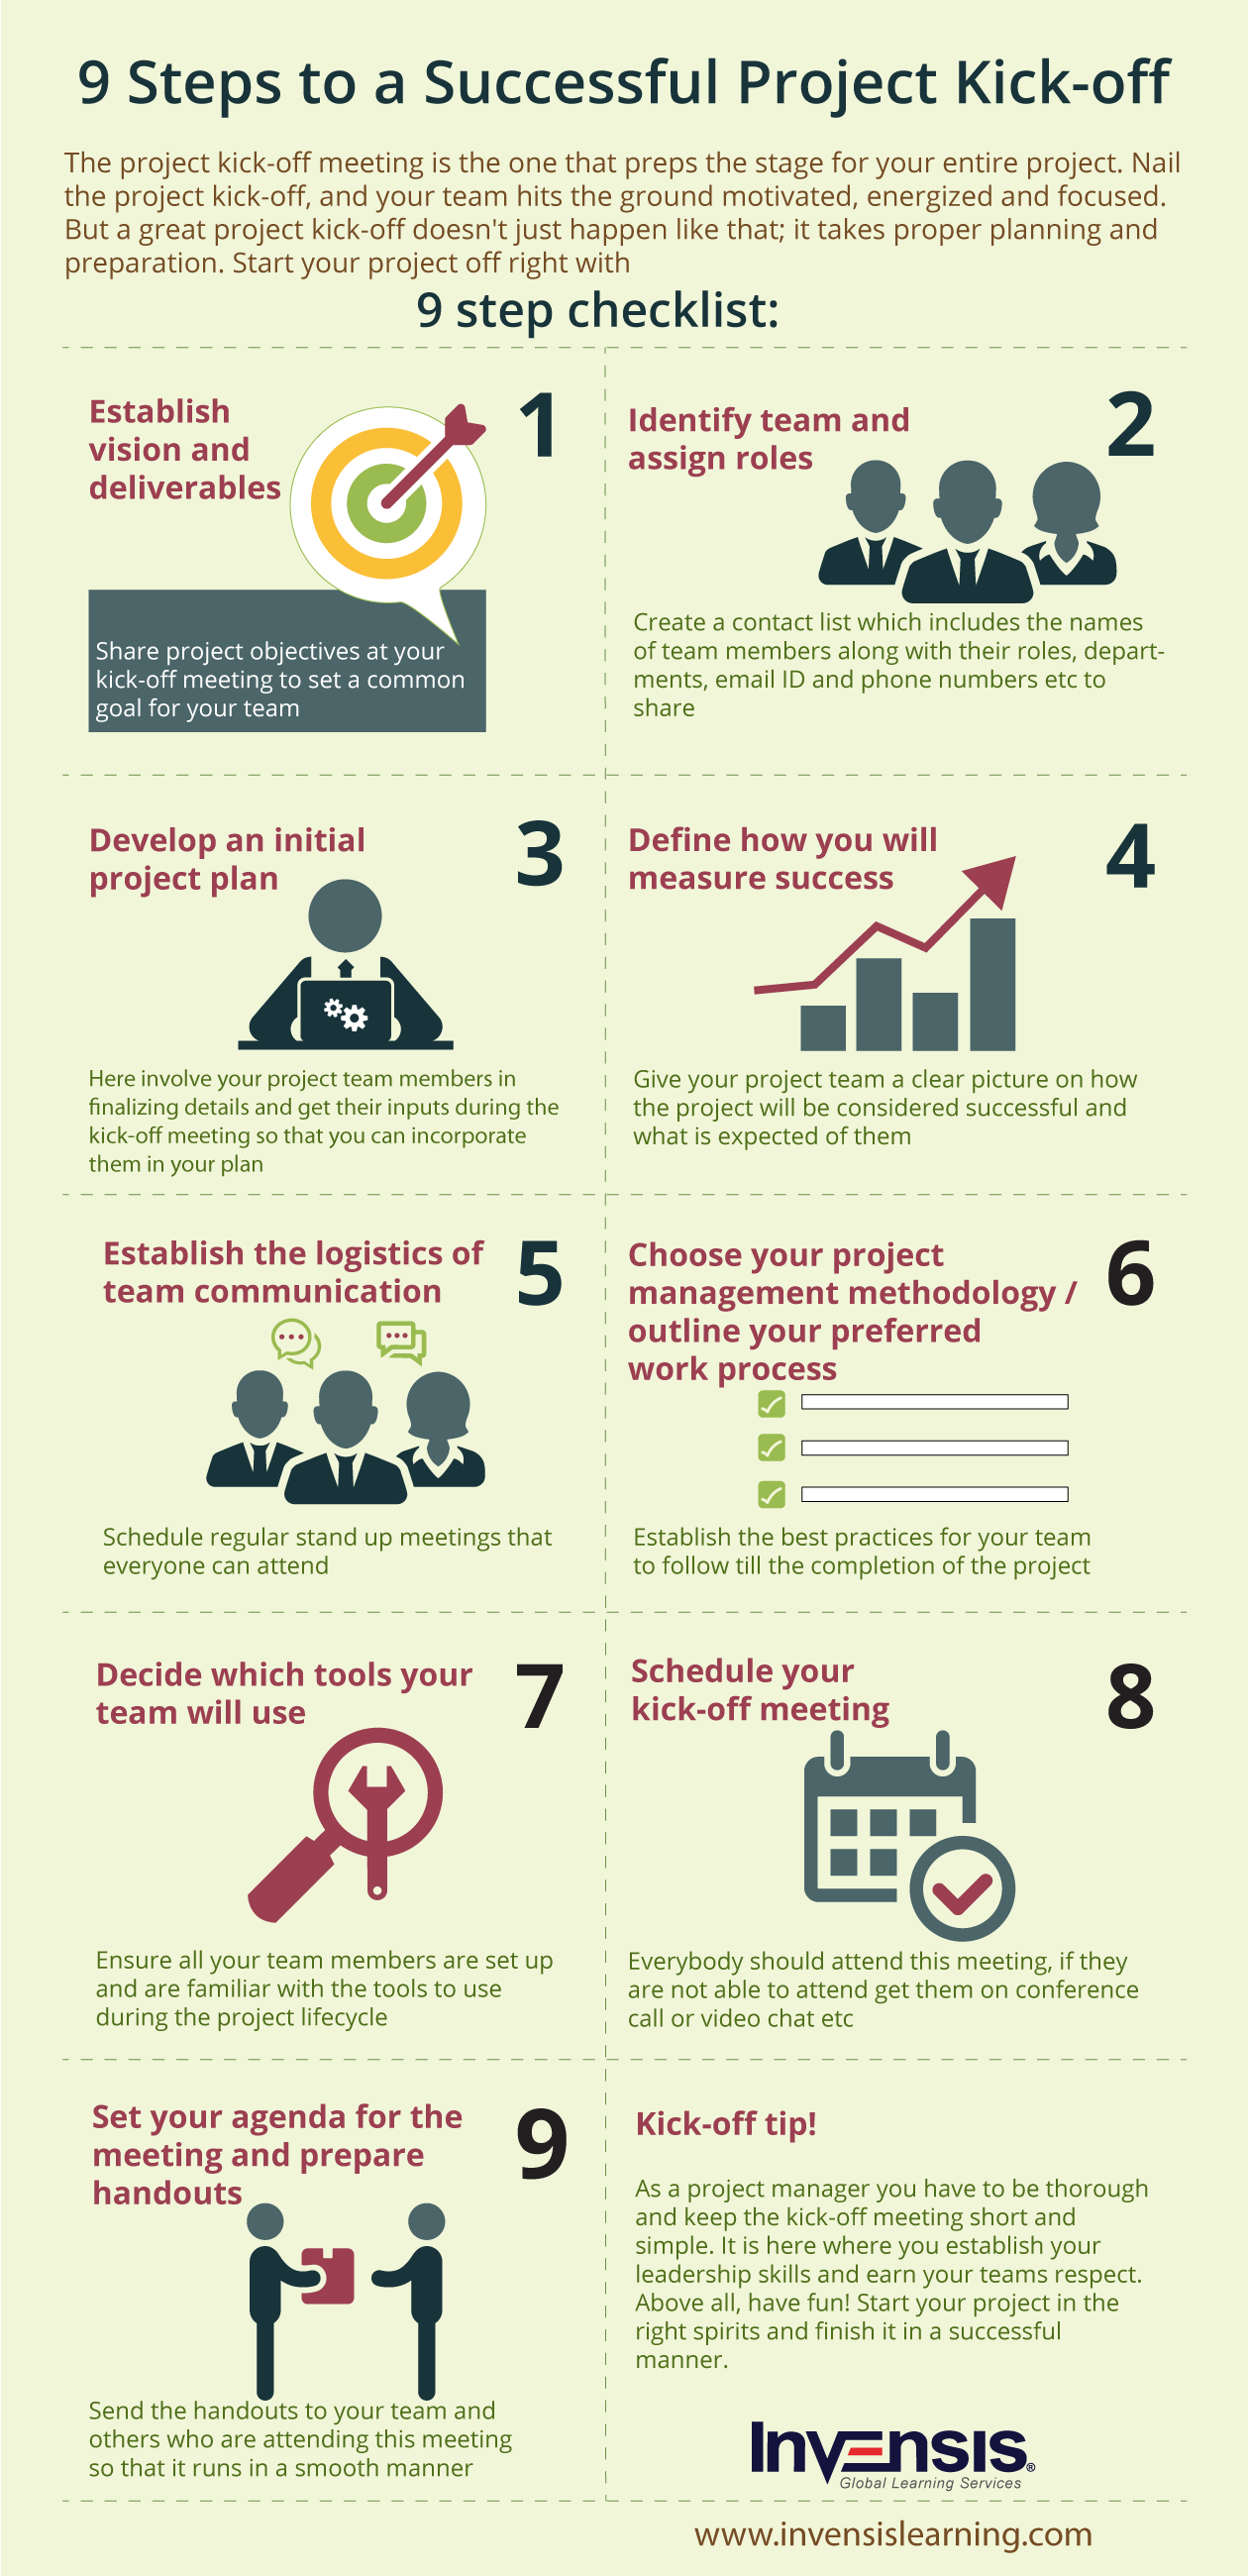 9 Steps to a Successful Project Kick-off